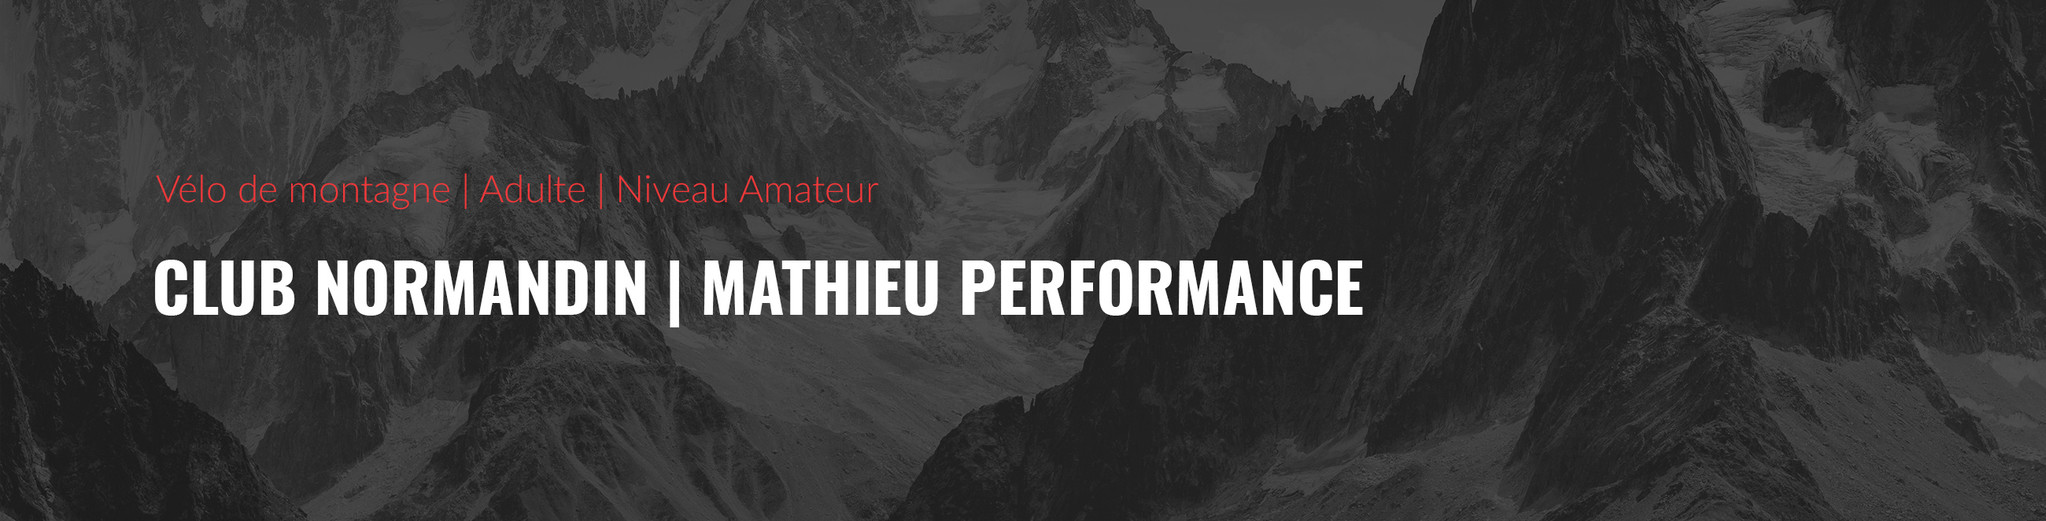 Club Normandin | Mathieu Performance